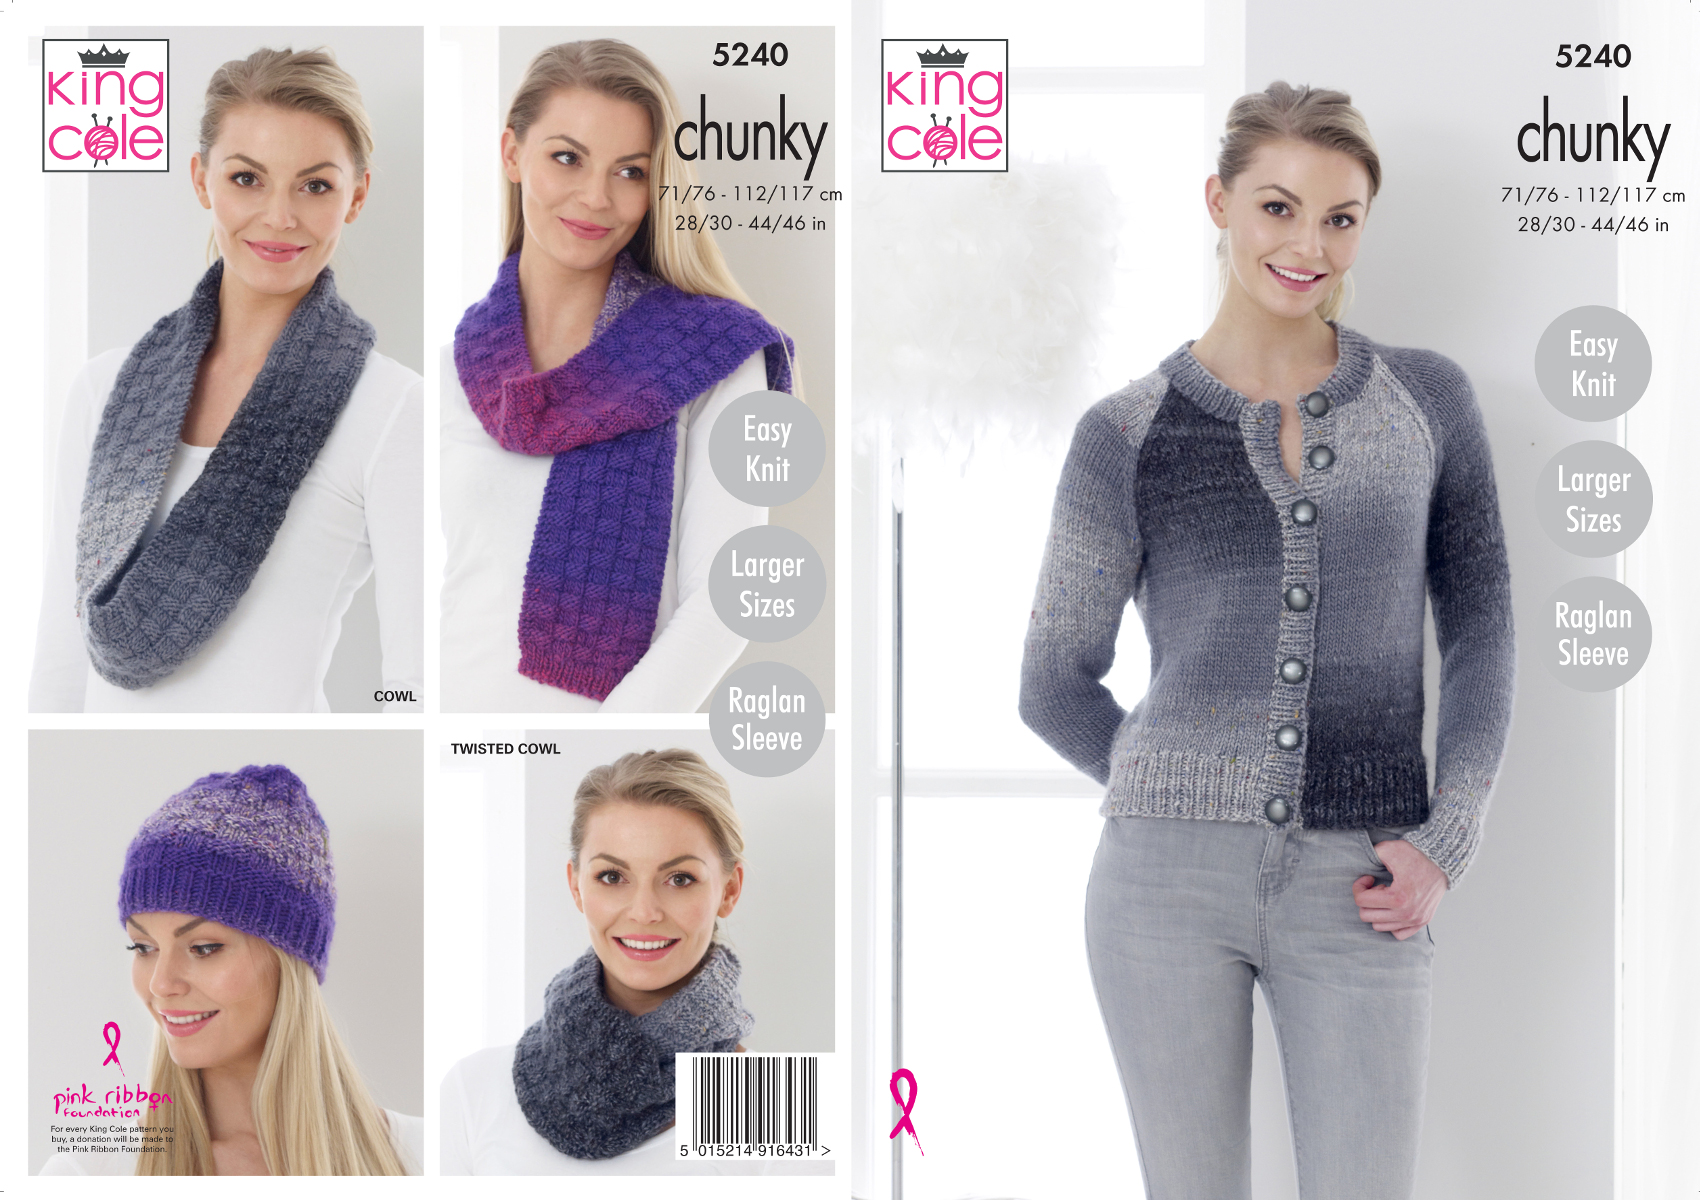 super chunky knitting scarf cowl hat and sweater pattern  5195 by king Cole